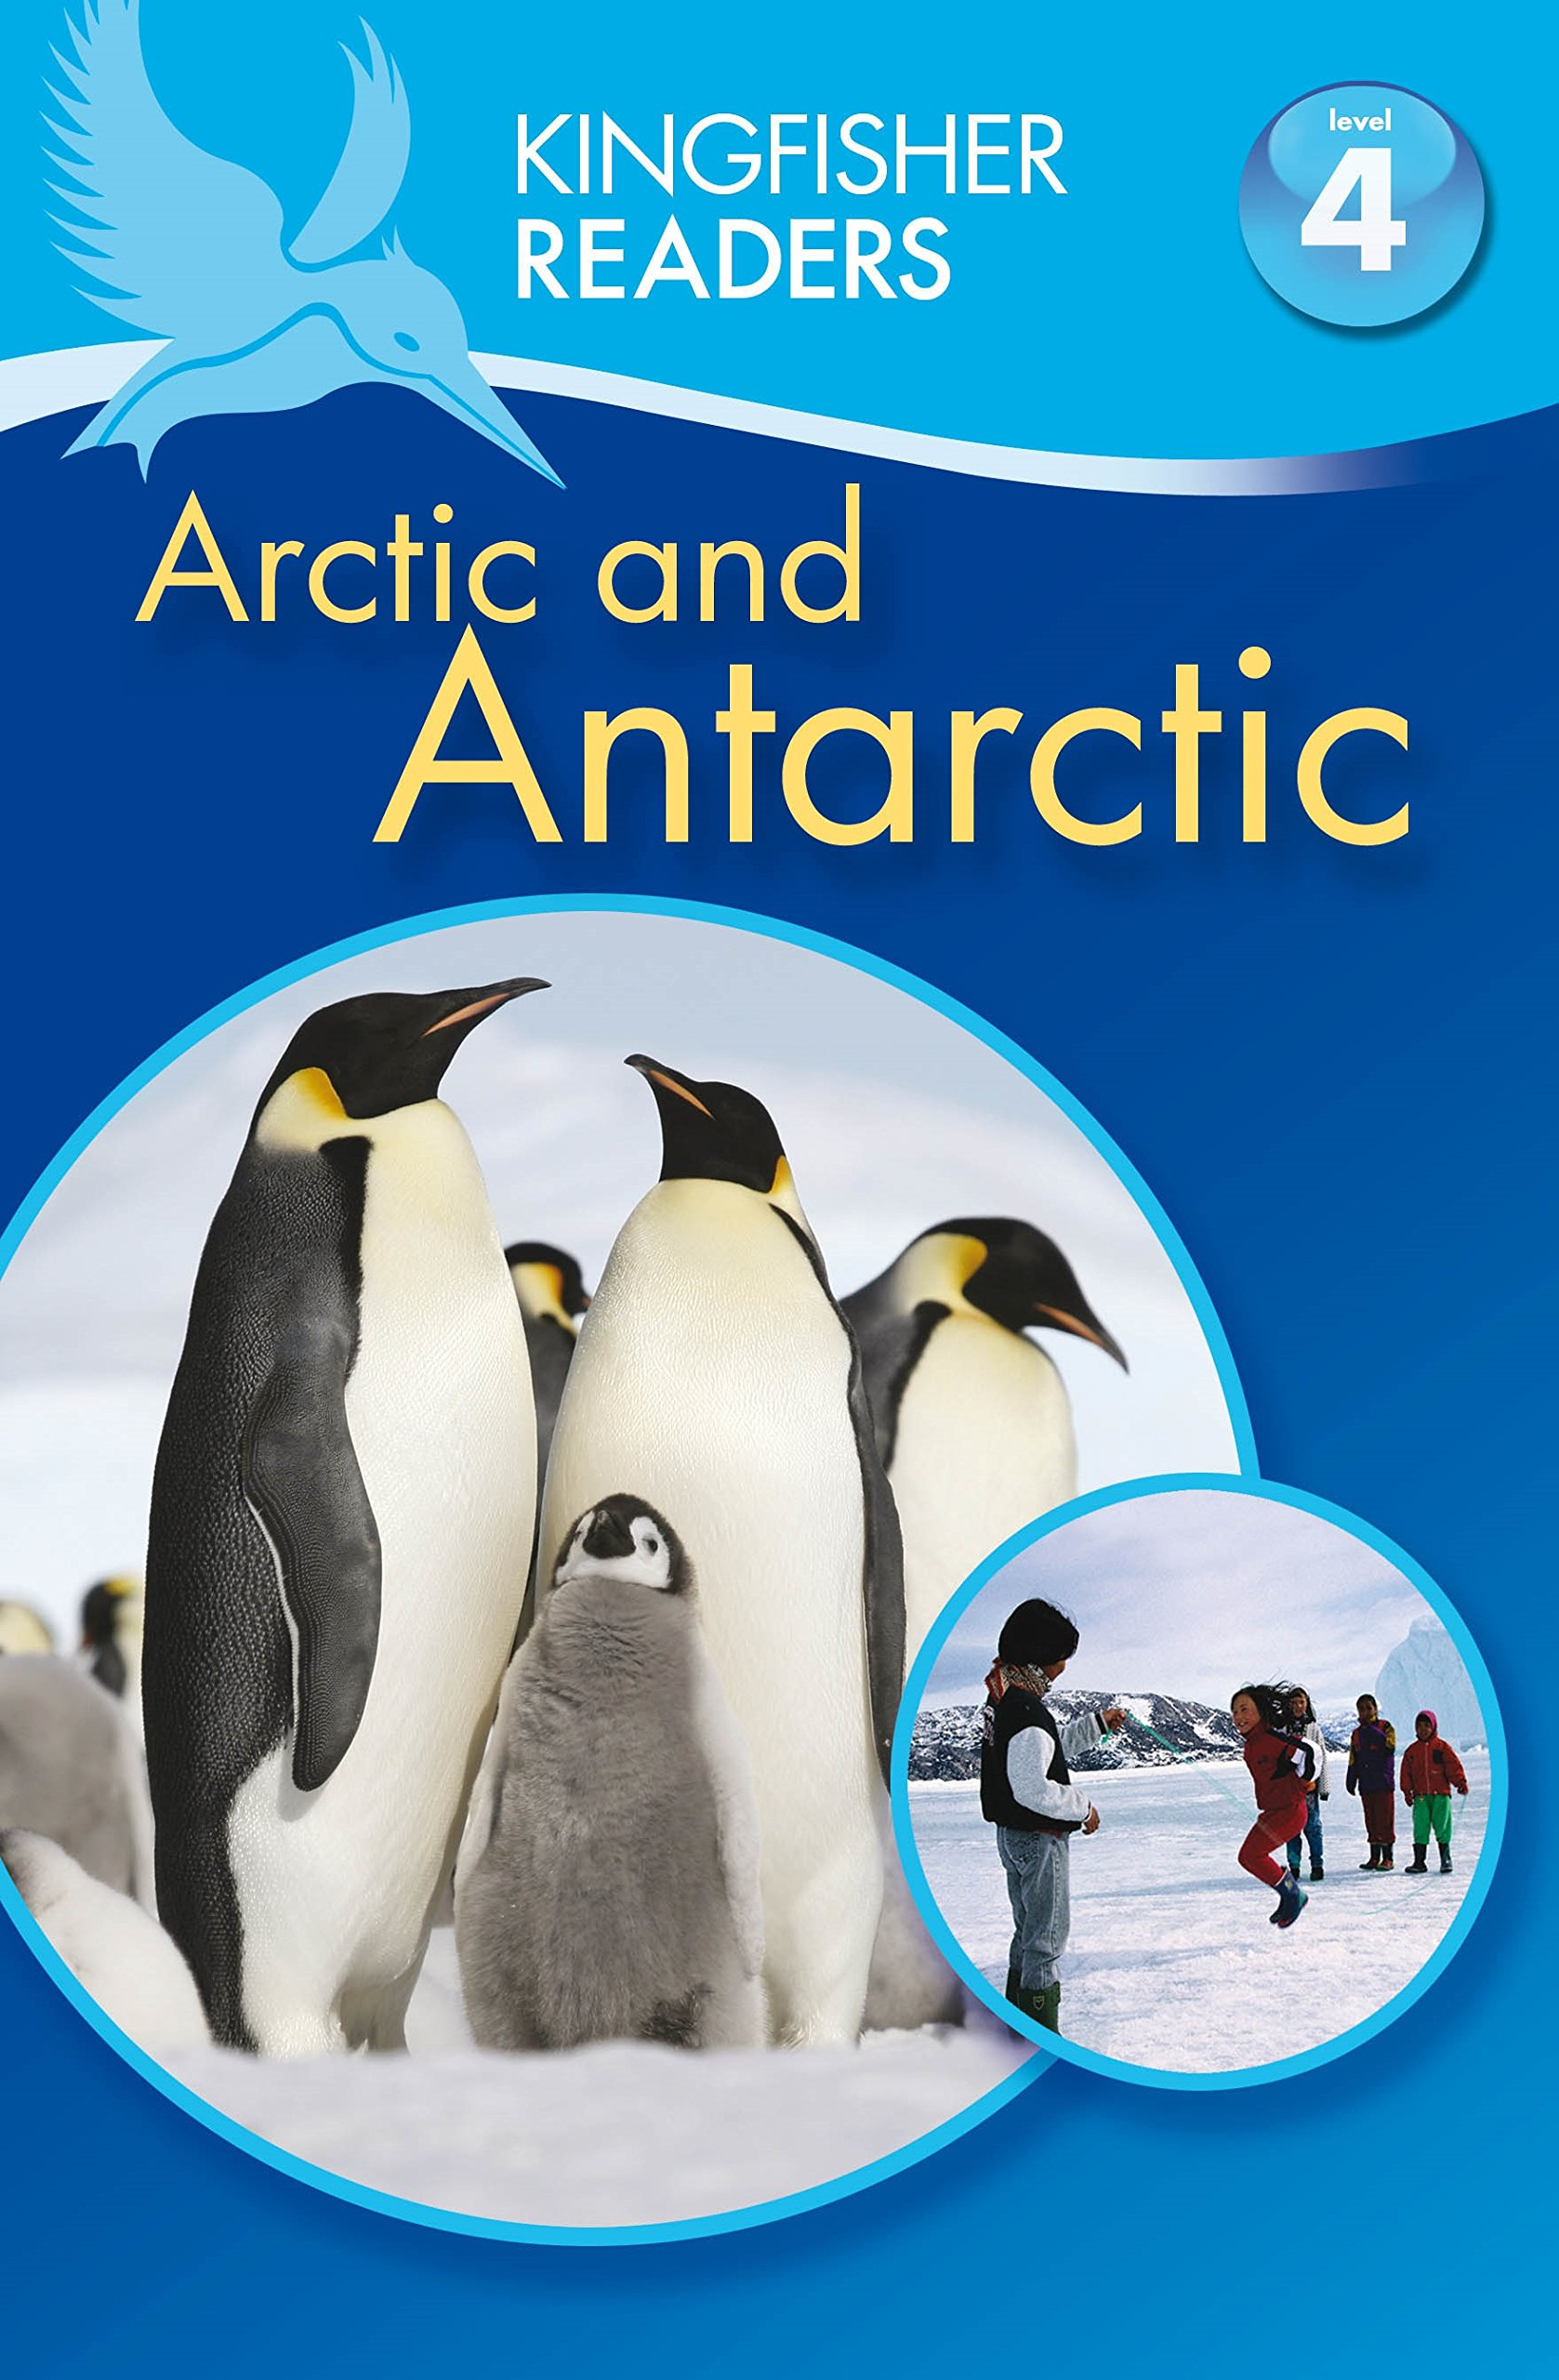 Kingfisher Readers: Arctic and Antarctic (Level 4: Reading Alone) reading literacy for adolescents